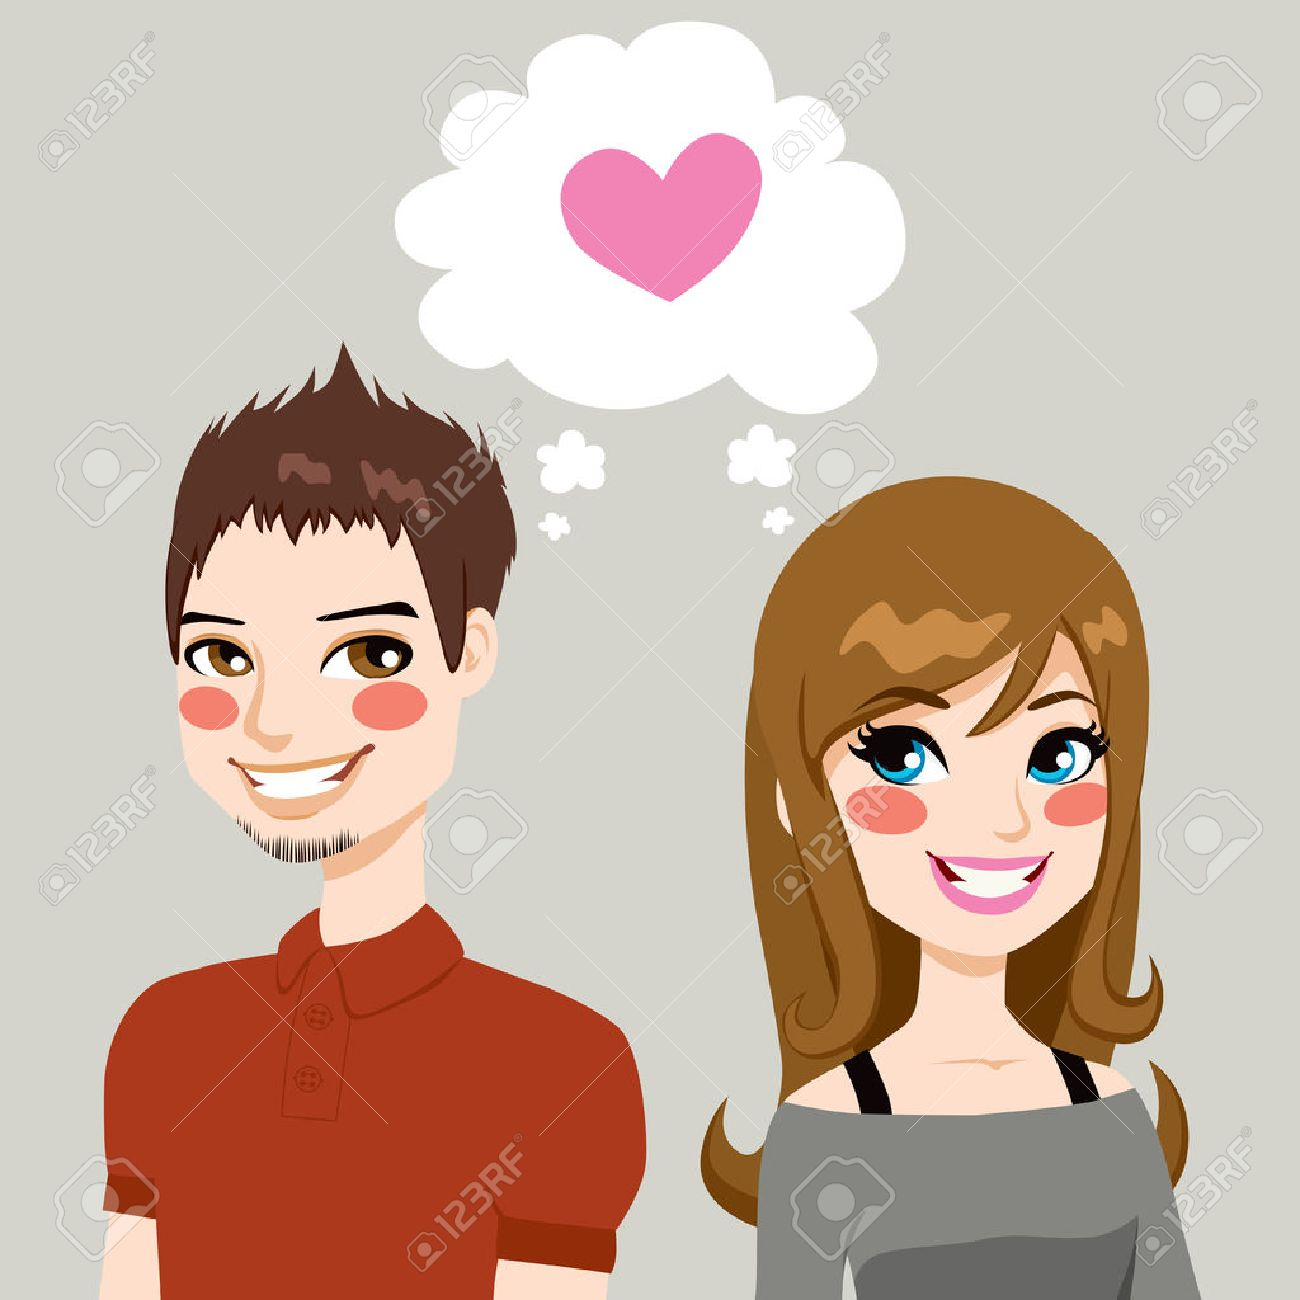 Concept illustration of a man and a woman side by side make eye contact and falling in love together Stock Vector - 22964394